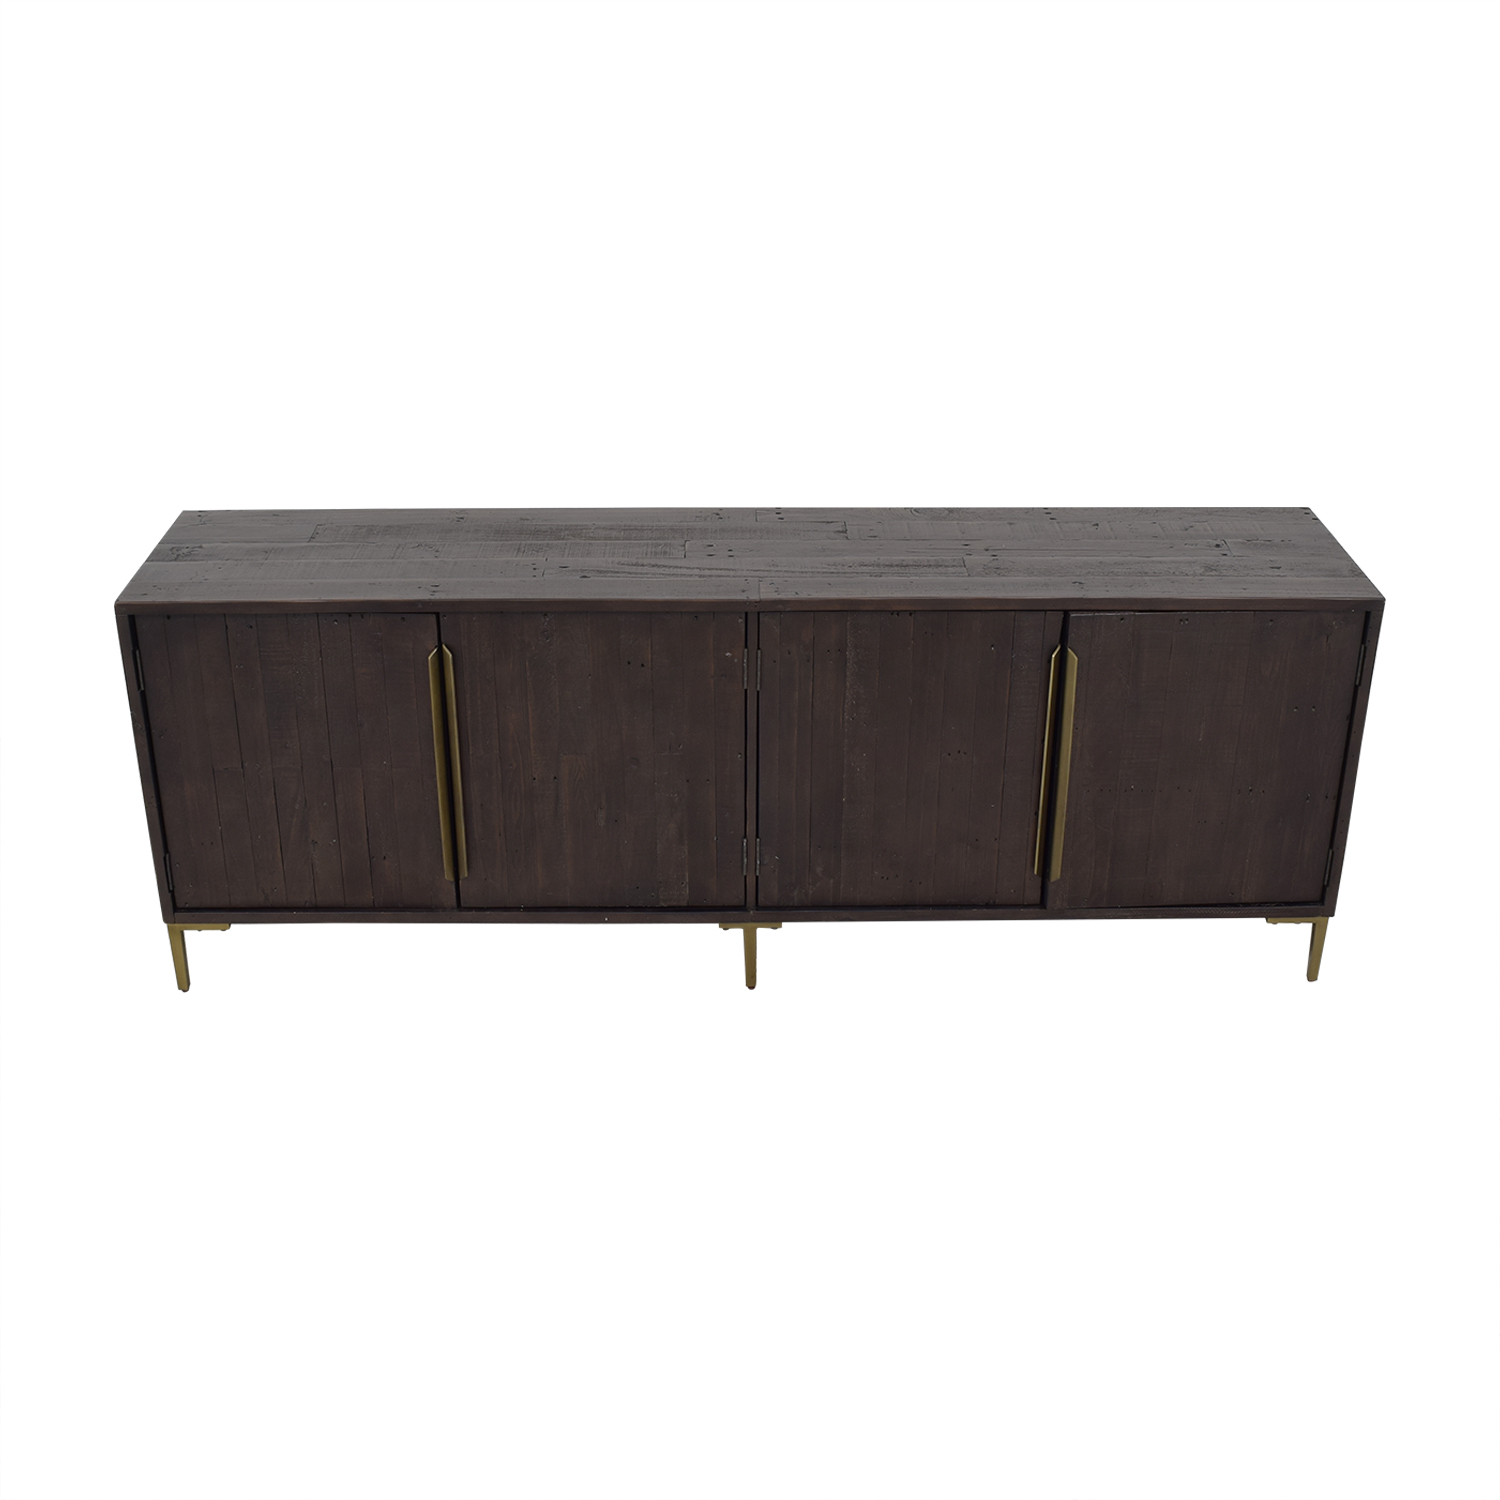 Four Hands Four Hands Reclaimed Wood Sideboard